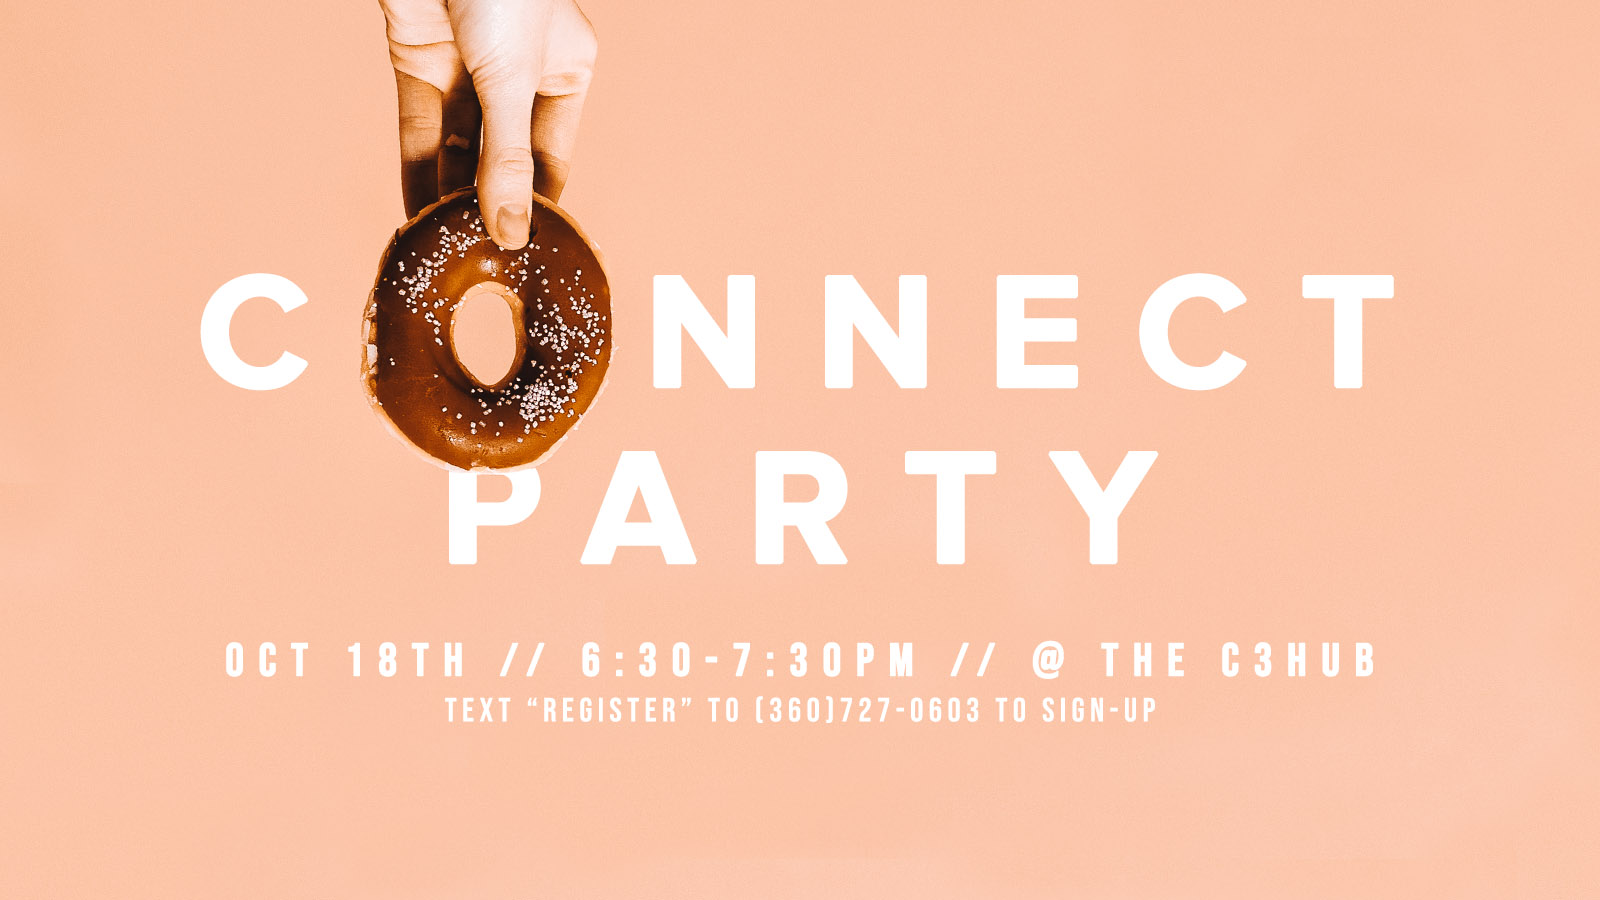 ConnectParty02.jpg